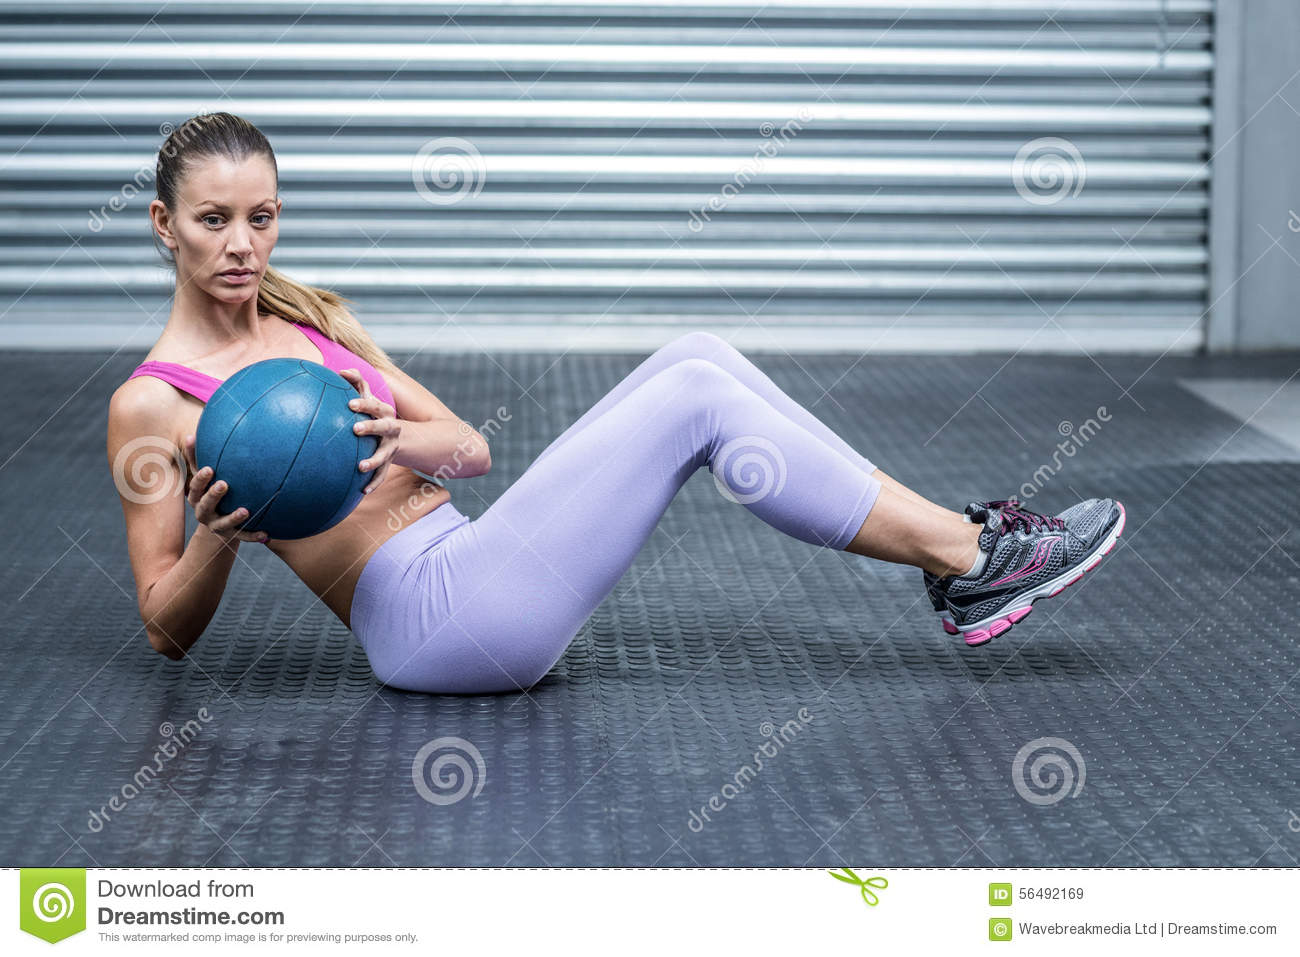 A muscular woman doing core exercises